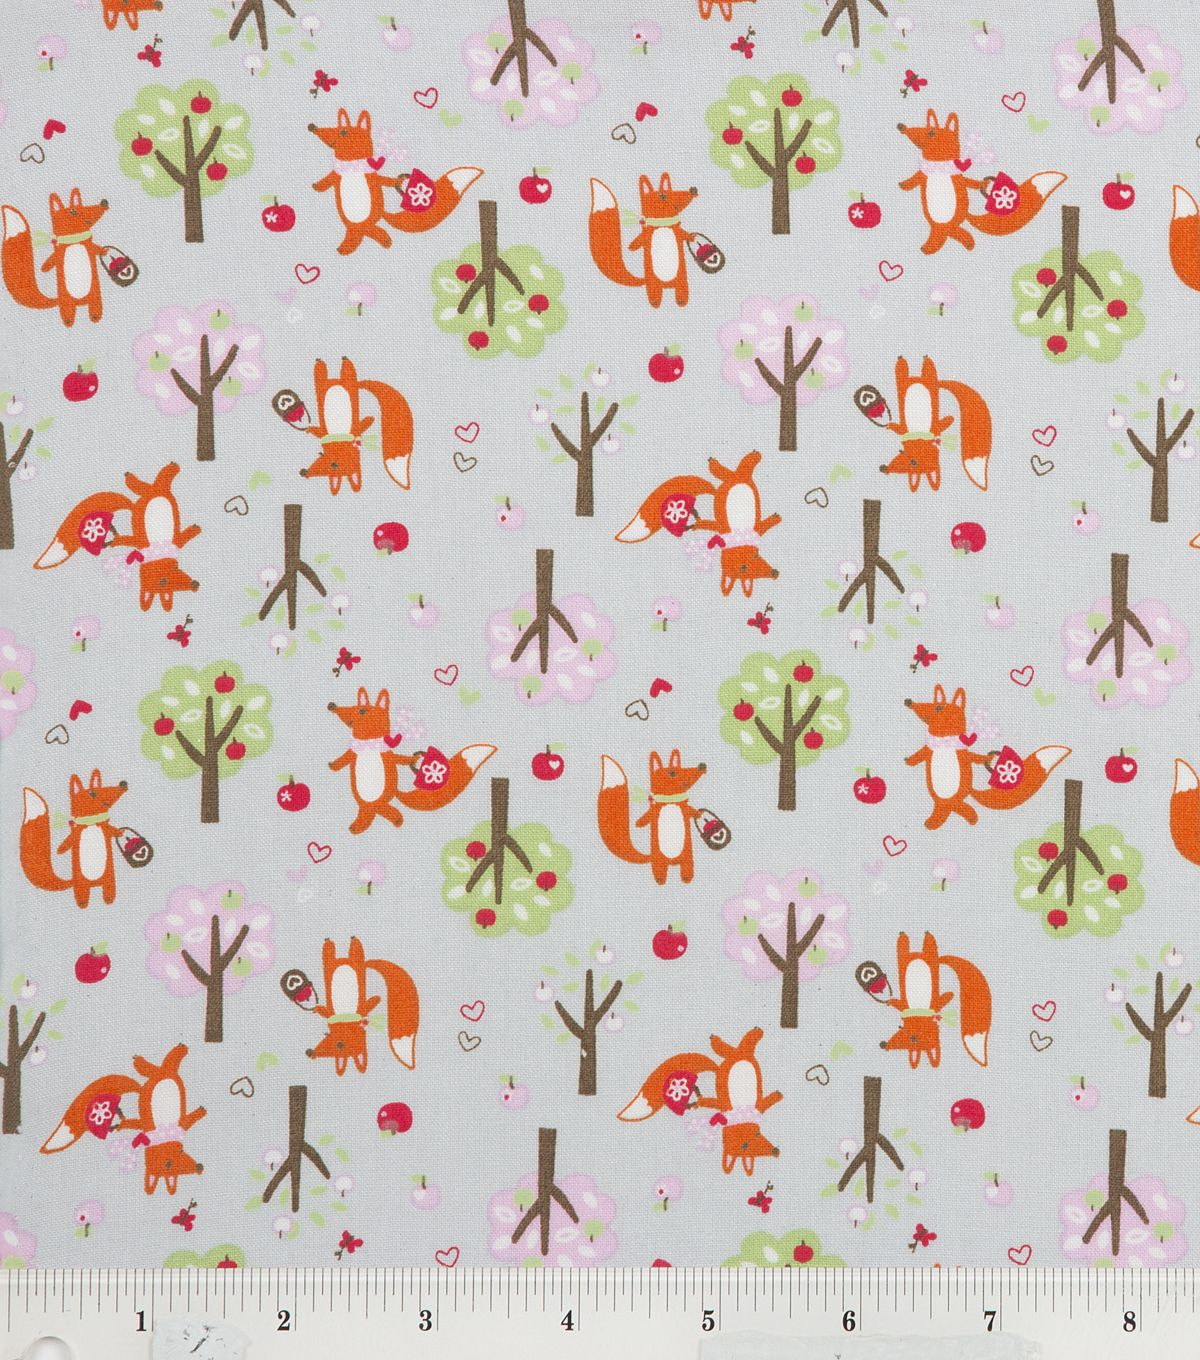 Foxy foxes :) Cute red riding fox #fabric! #quilt - hmmm why do I